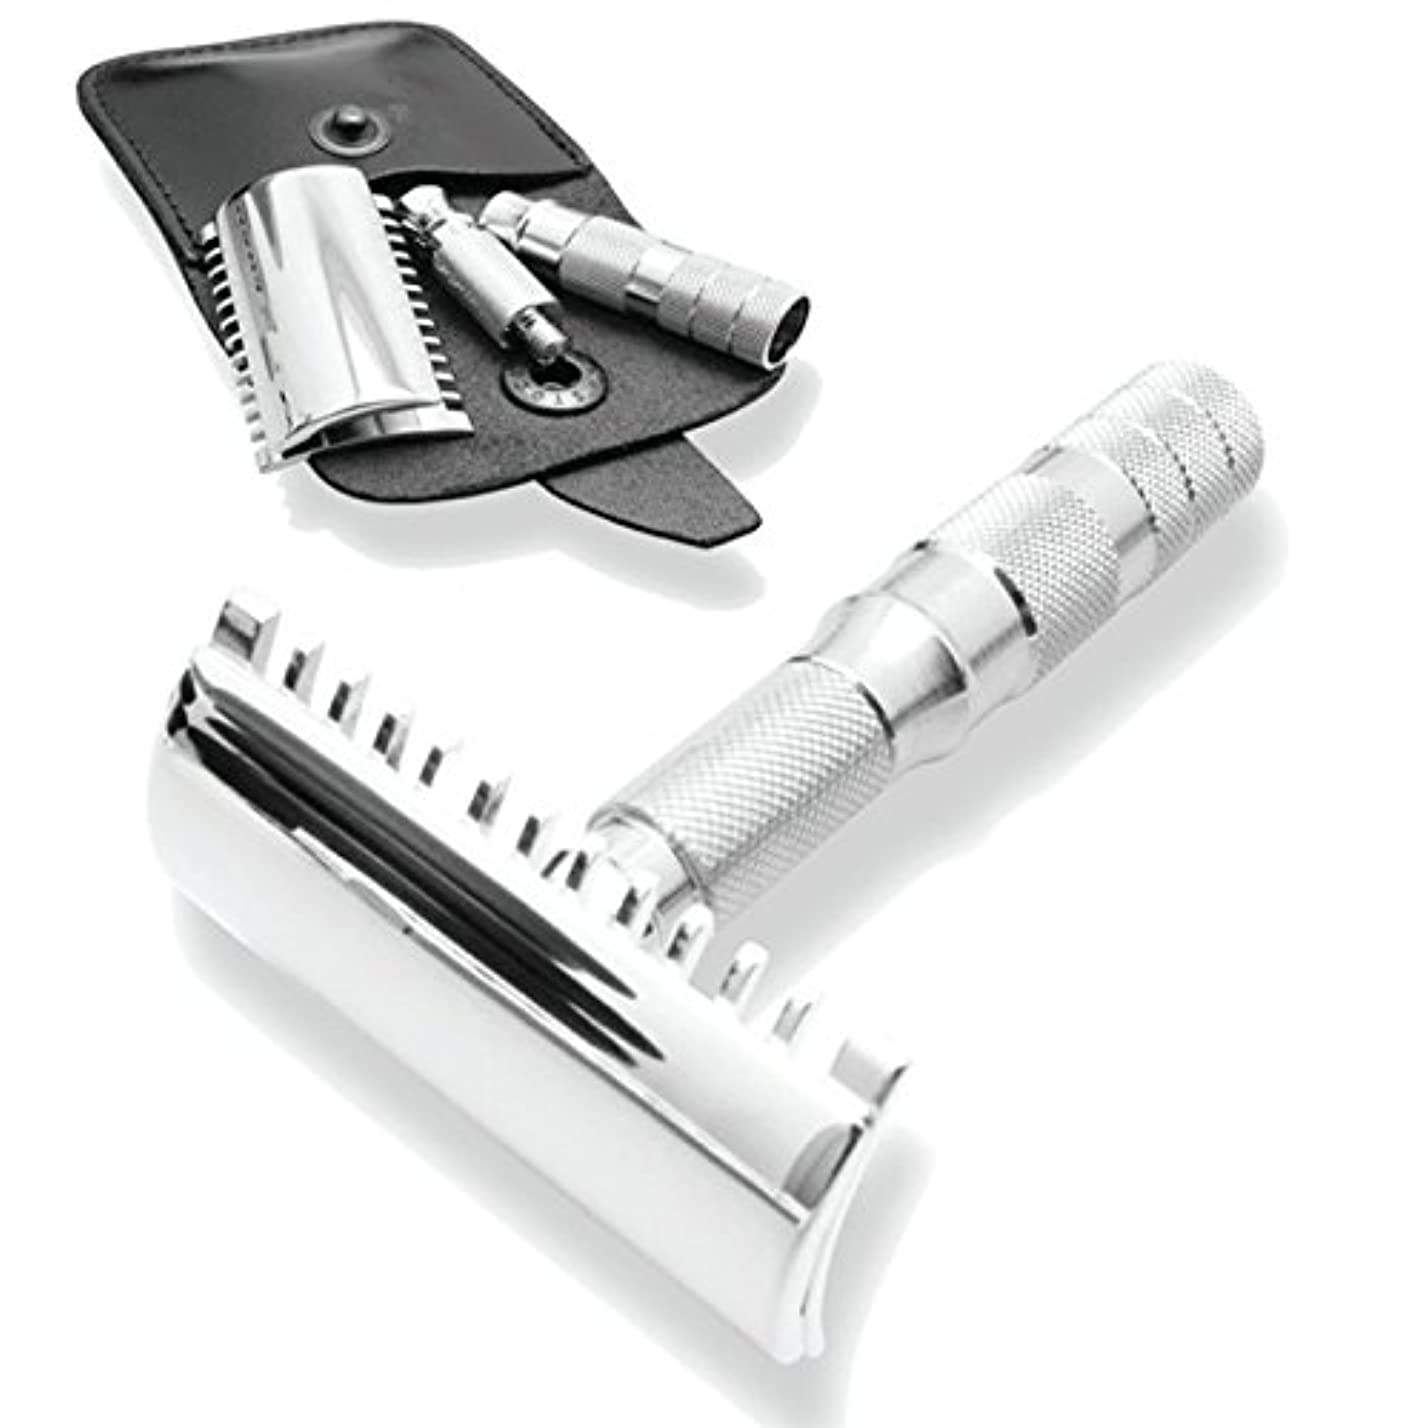 対立そのようなくしゃみMerkur & Dovo Open Tooth Comb Travel Razor